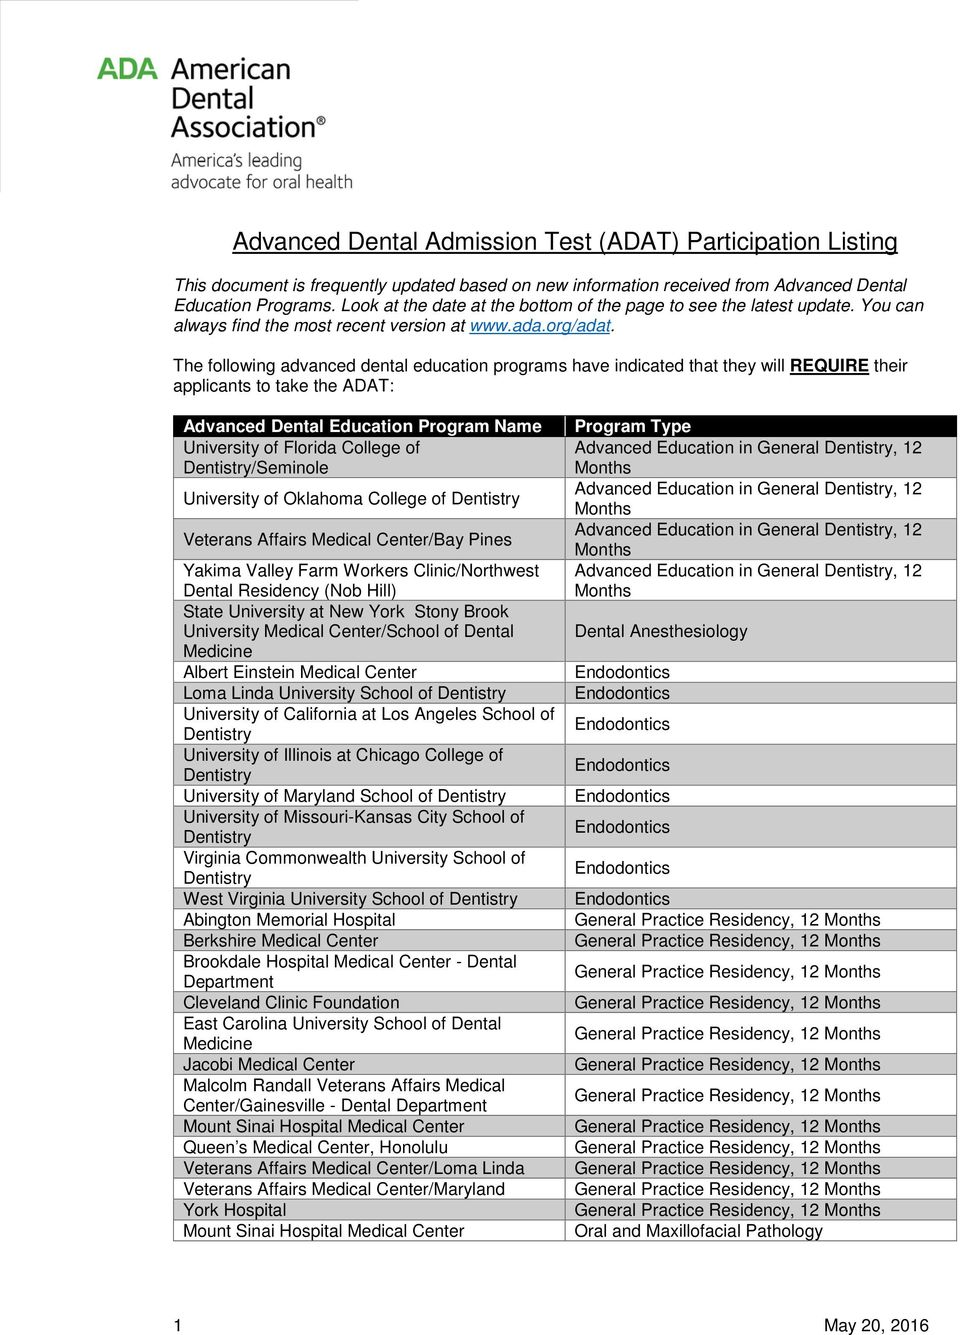 The following advanced dental education programs have indicated that they will REQUIRE their applicants to take the ADAT: Advanced Dental Education Program Name University of Florida College of